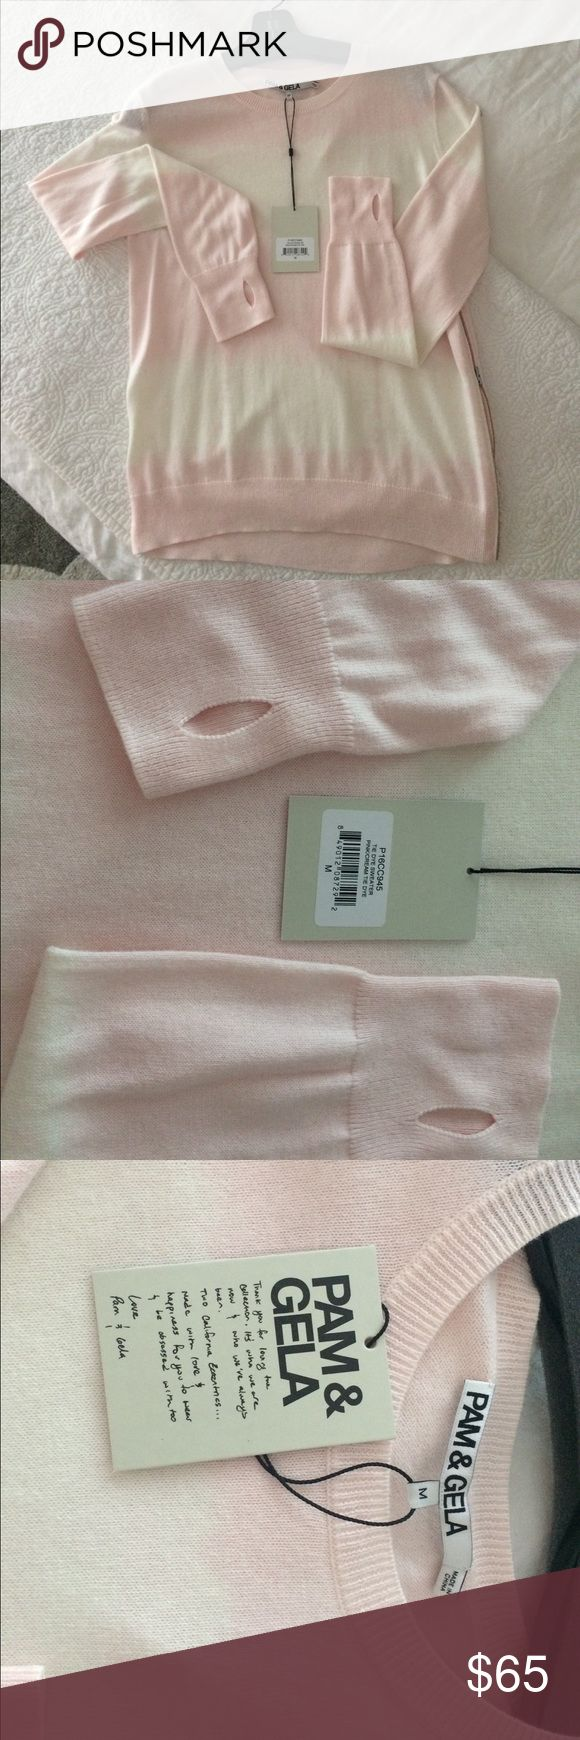 Pam & Gela LS lightweight sweater M 95% cotton and 5% cashmere Long sleeve sweater from Pam & Gela. New with tags. Size medium. Gorgeous pink ombré. Cool detail of thumb holes on the sleeve- see pics. pam & gela Tops Tees - Long Sleeve